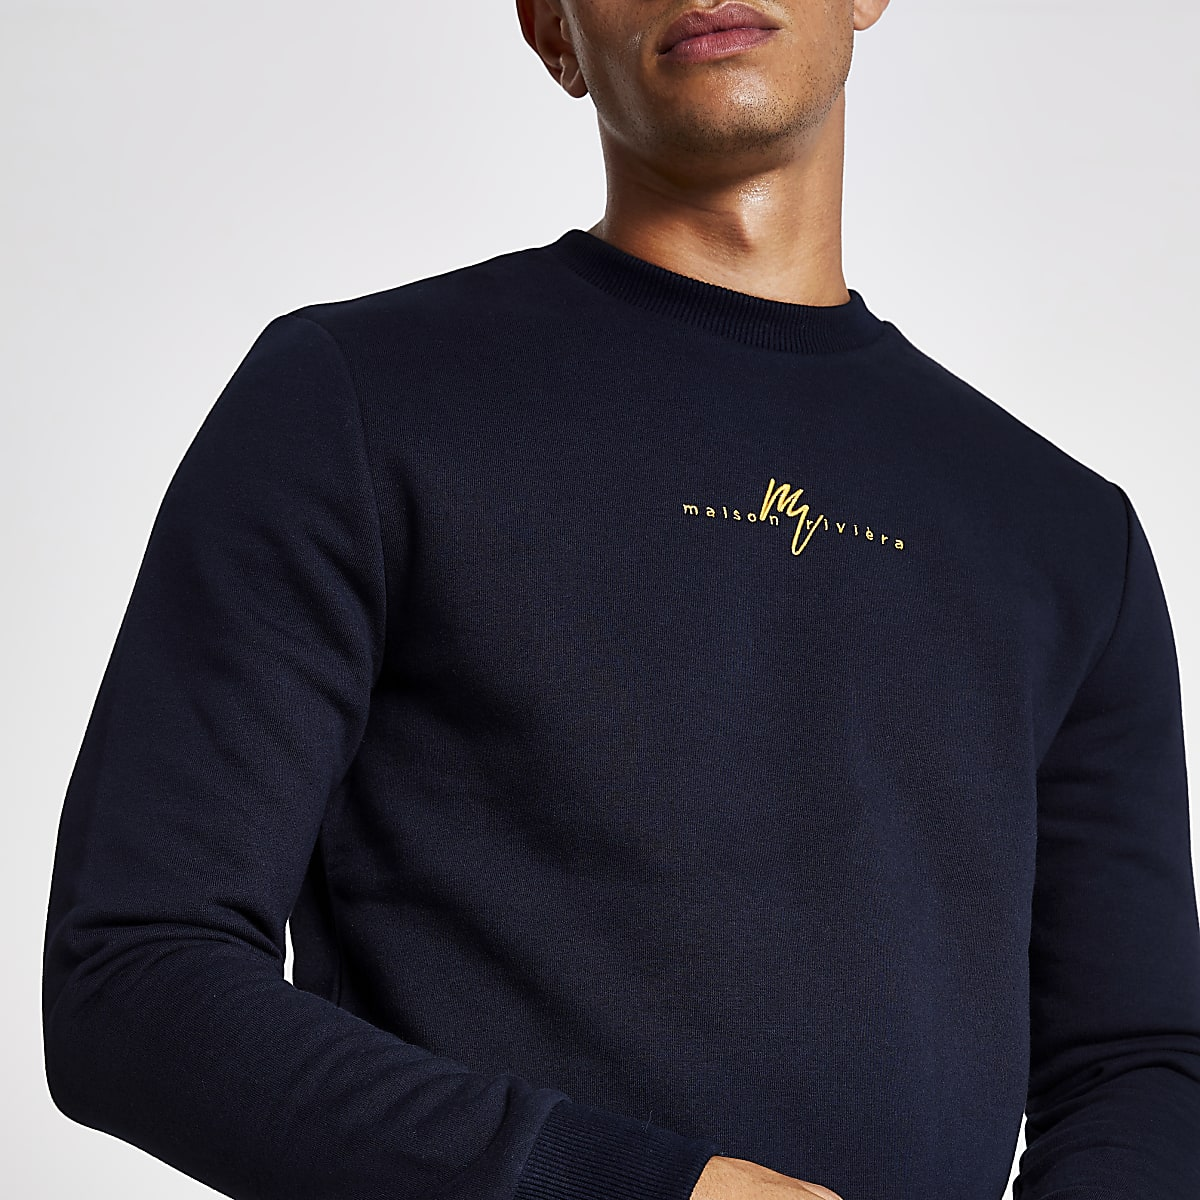 Maison Riviera - Marineblauw slim-fit sweatshirt